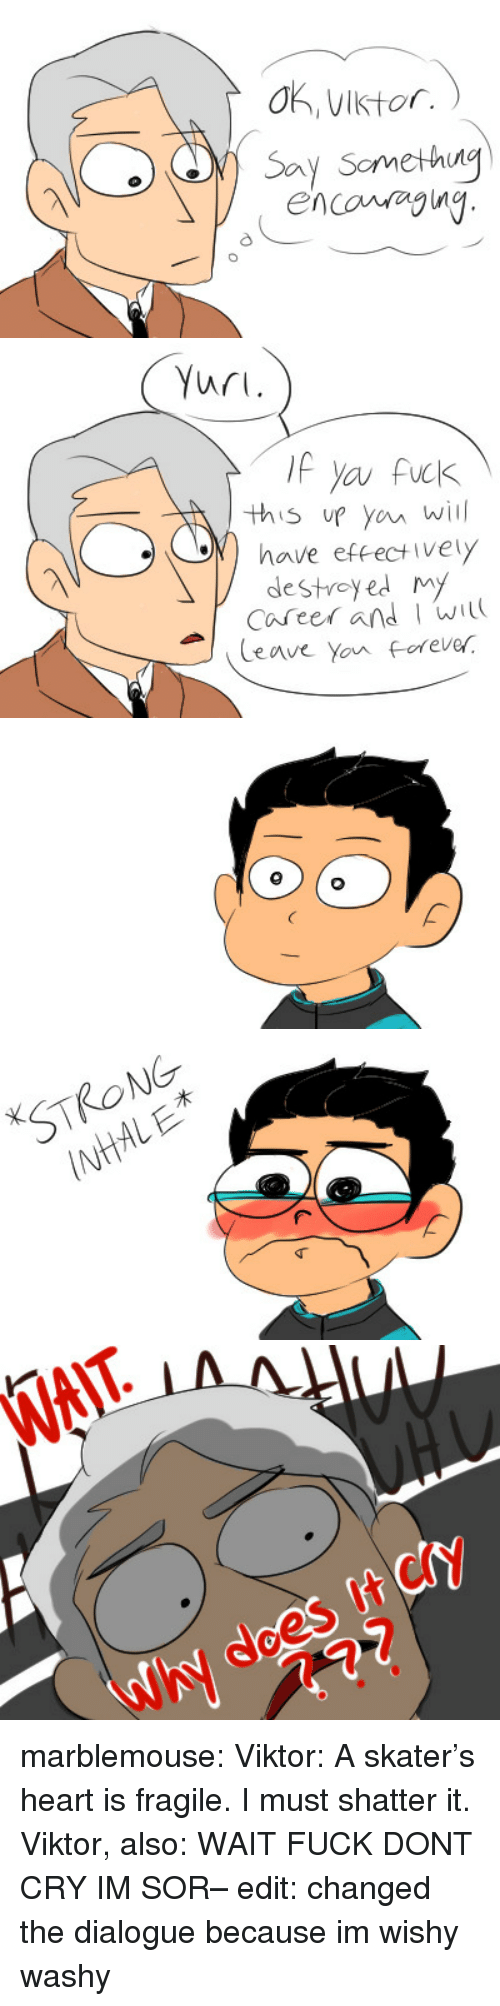 forever strong: 0, Viktor.  encovy   Yuri.  this up you will  have effectively  destreyed my  Career and w  Ceave Yon forever   STRONG  INHAL E   WAIT  Why does It cy marblemouse: Viktor: A skater's heart is fragile. I must shatter it. Viktor, also: WAIT FUCK DONT CRY IM SOR– edit: changed the dialogue because im wishy washy